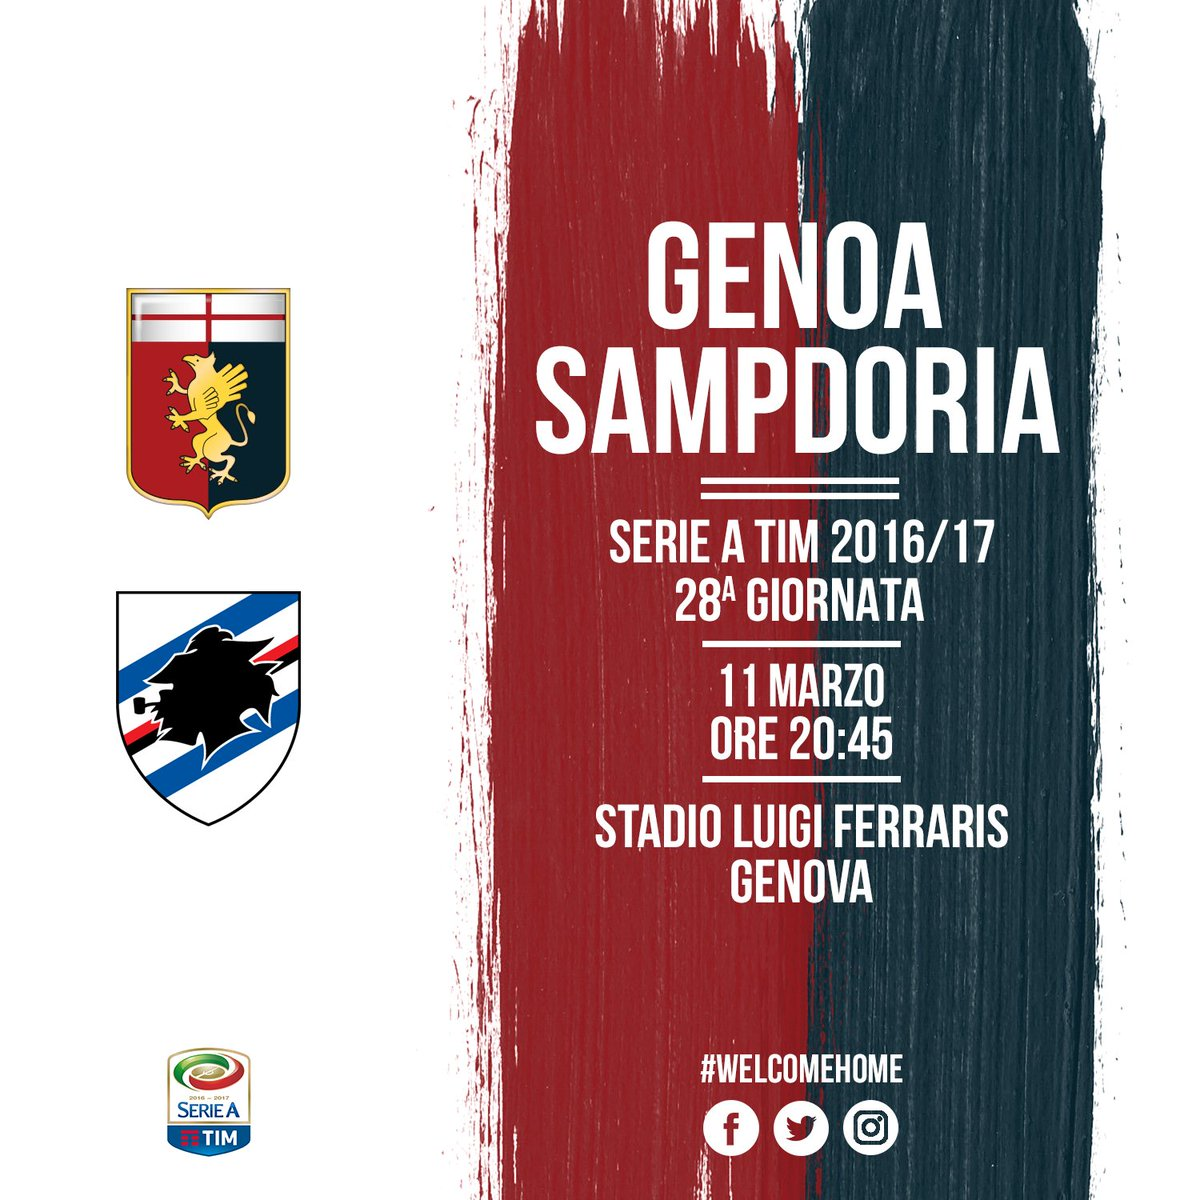 Vedere GENOA SAMPDORIA Streaming Online Rojadirecta ITA: alternative Diretta VIDEO Gratis